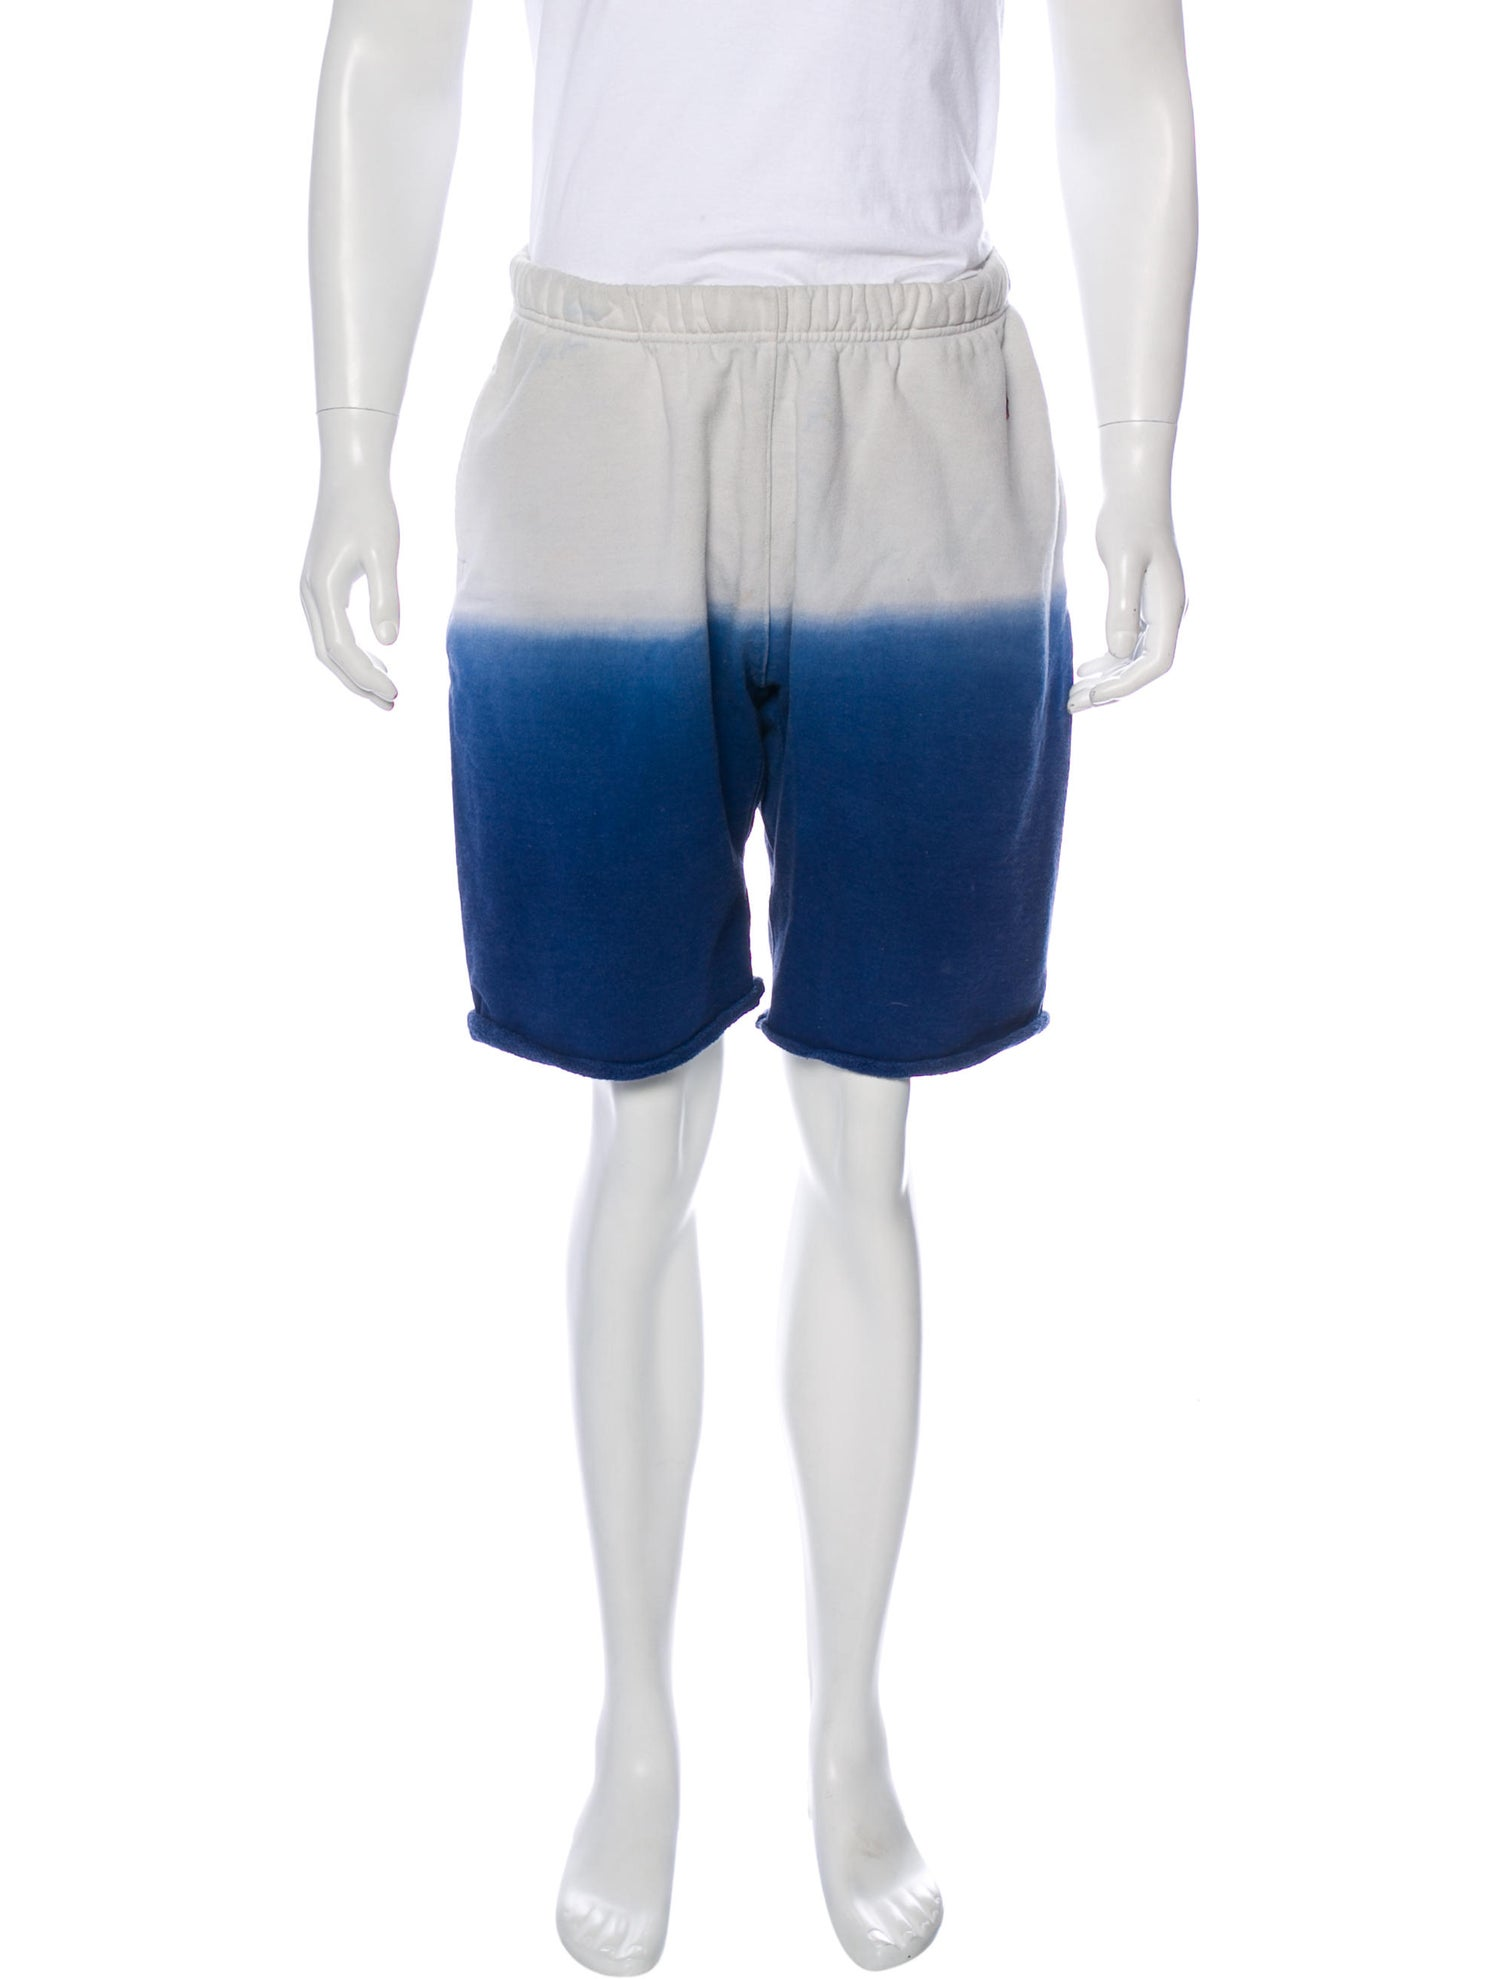 Gradient Jogger Shorts - Undefeated, $35